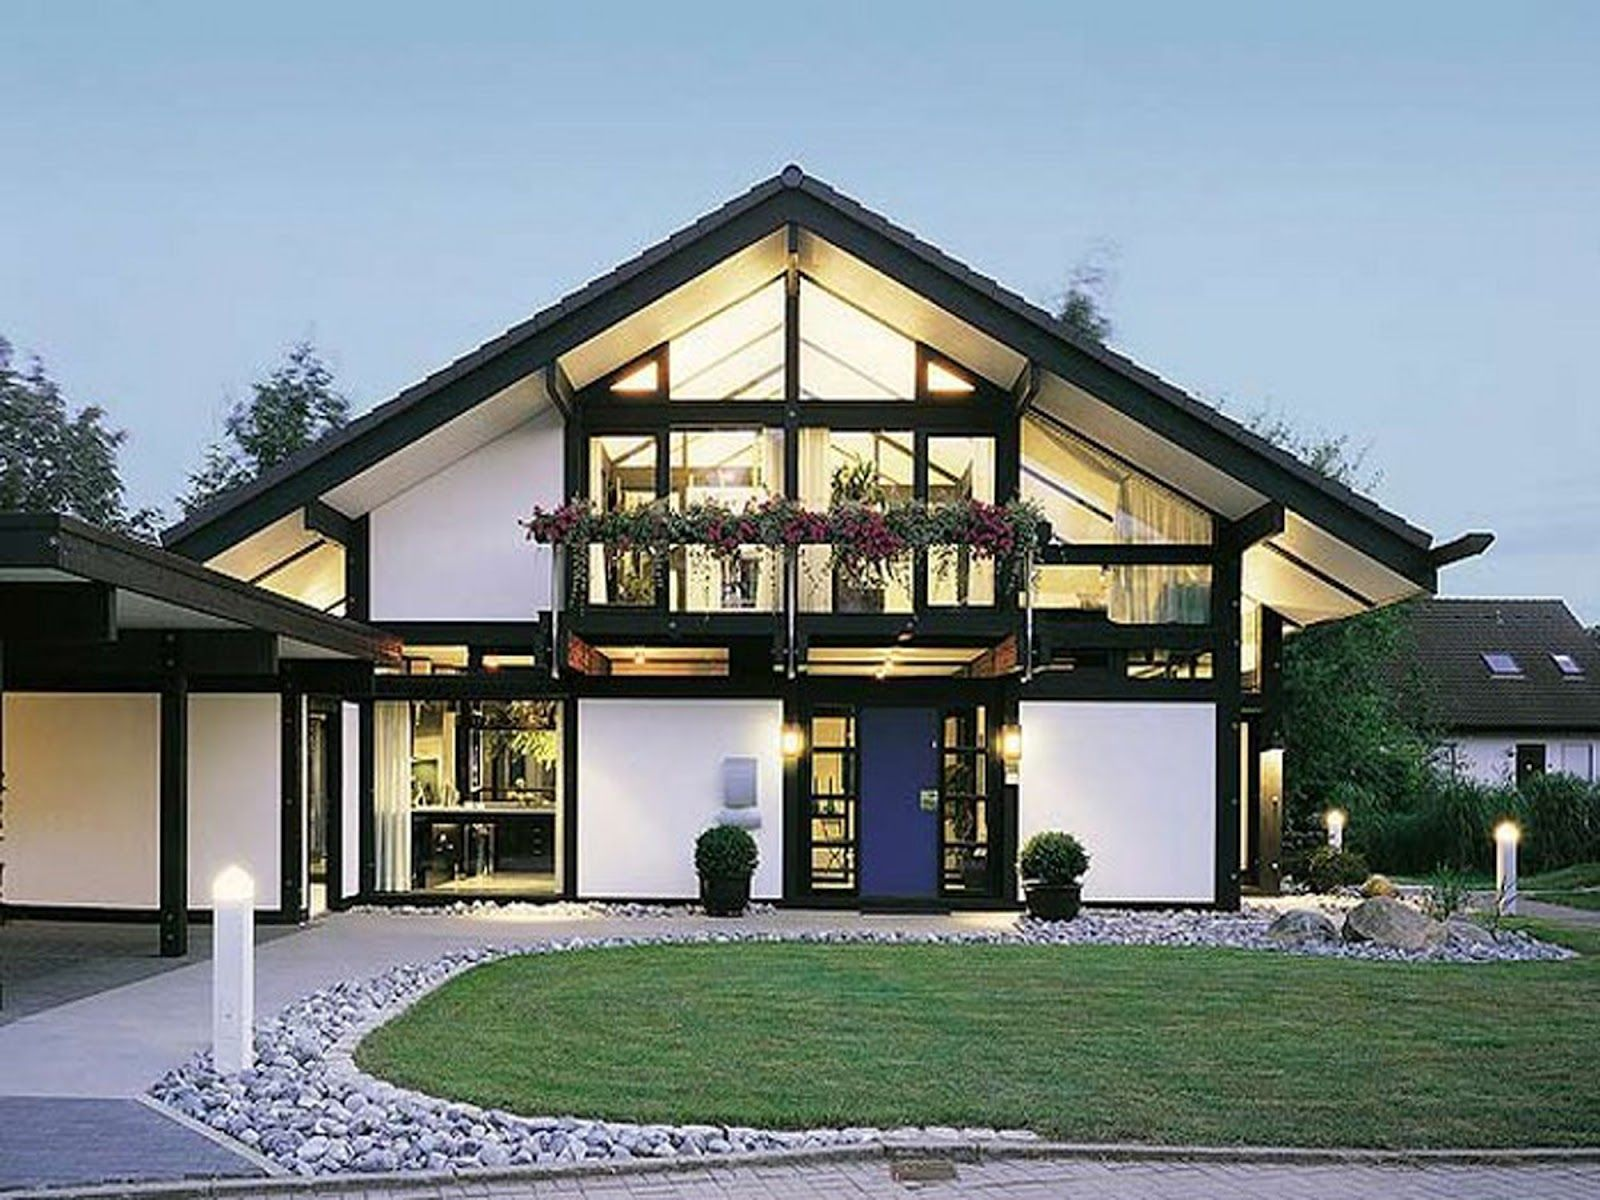 new home designs latest beautiful latest modern home designs - Modern Home Designs